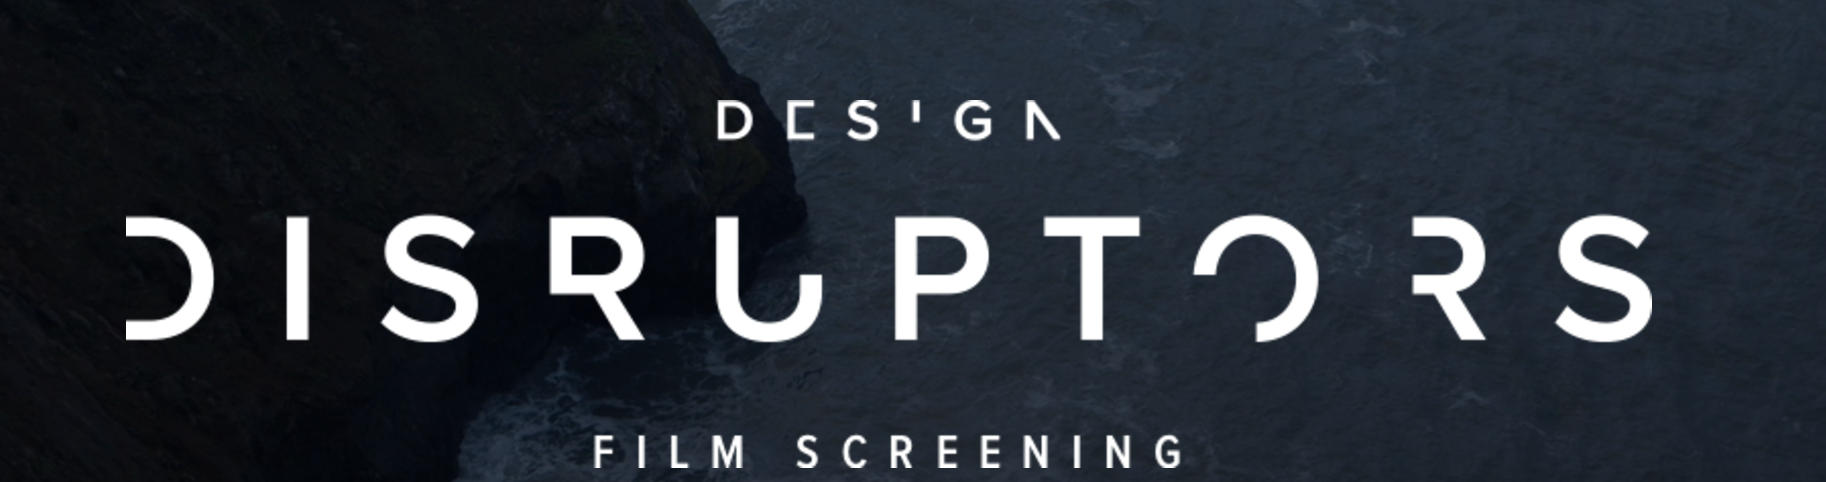 Design Disruptors Film Screening